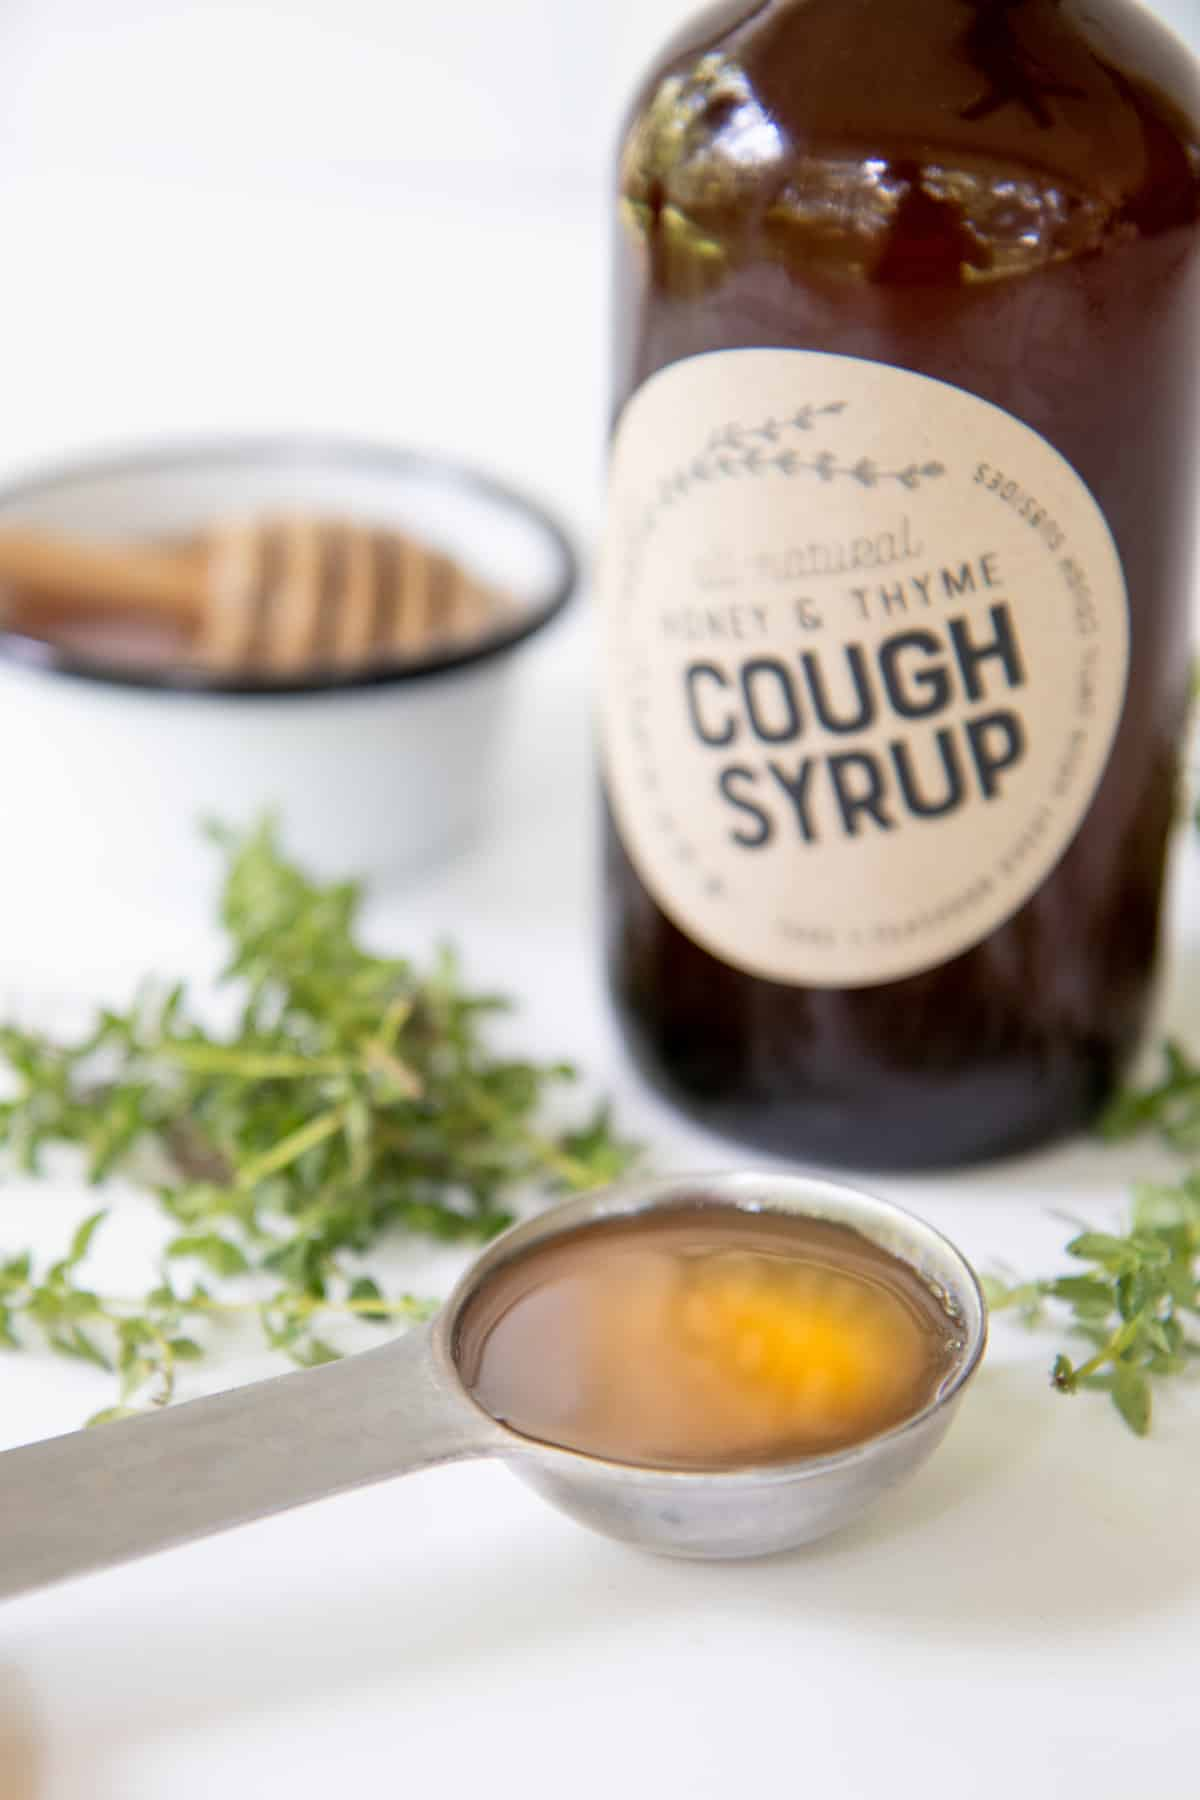 Measuring spoon full of Honey and Thyme Herbal Homemade Cough Syrup in front of a bottle of the syrup.